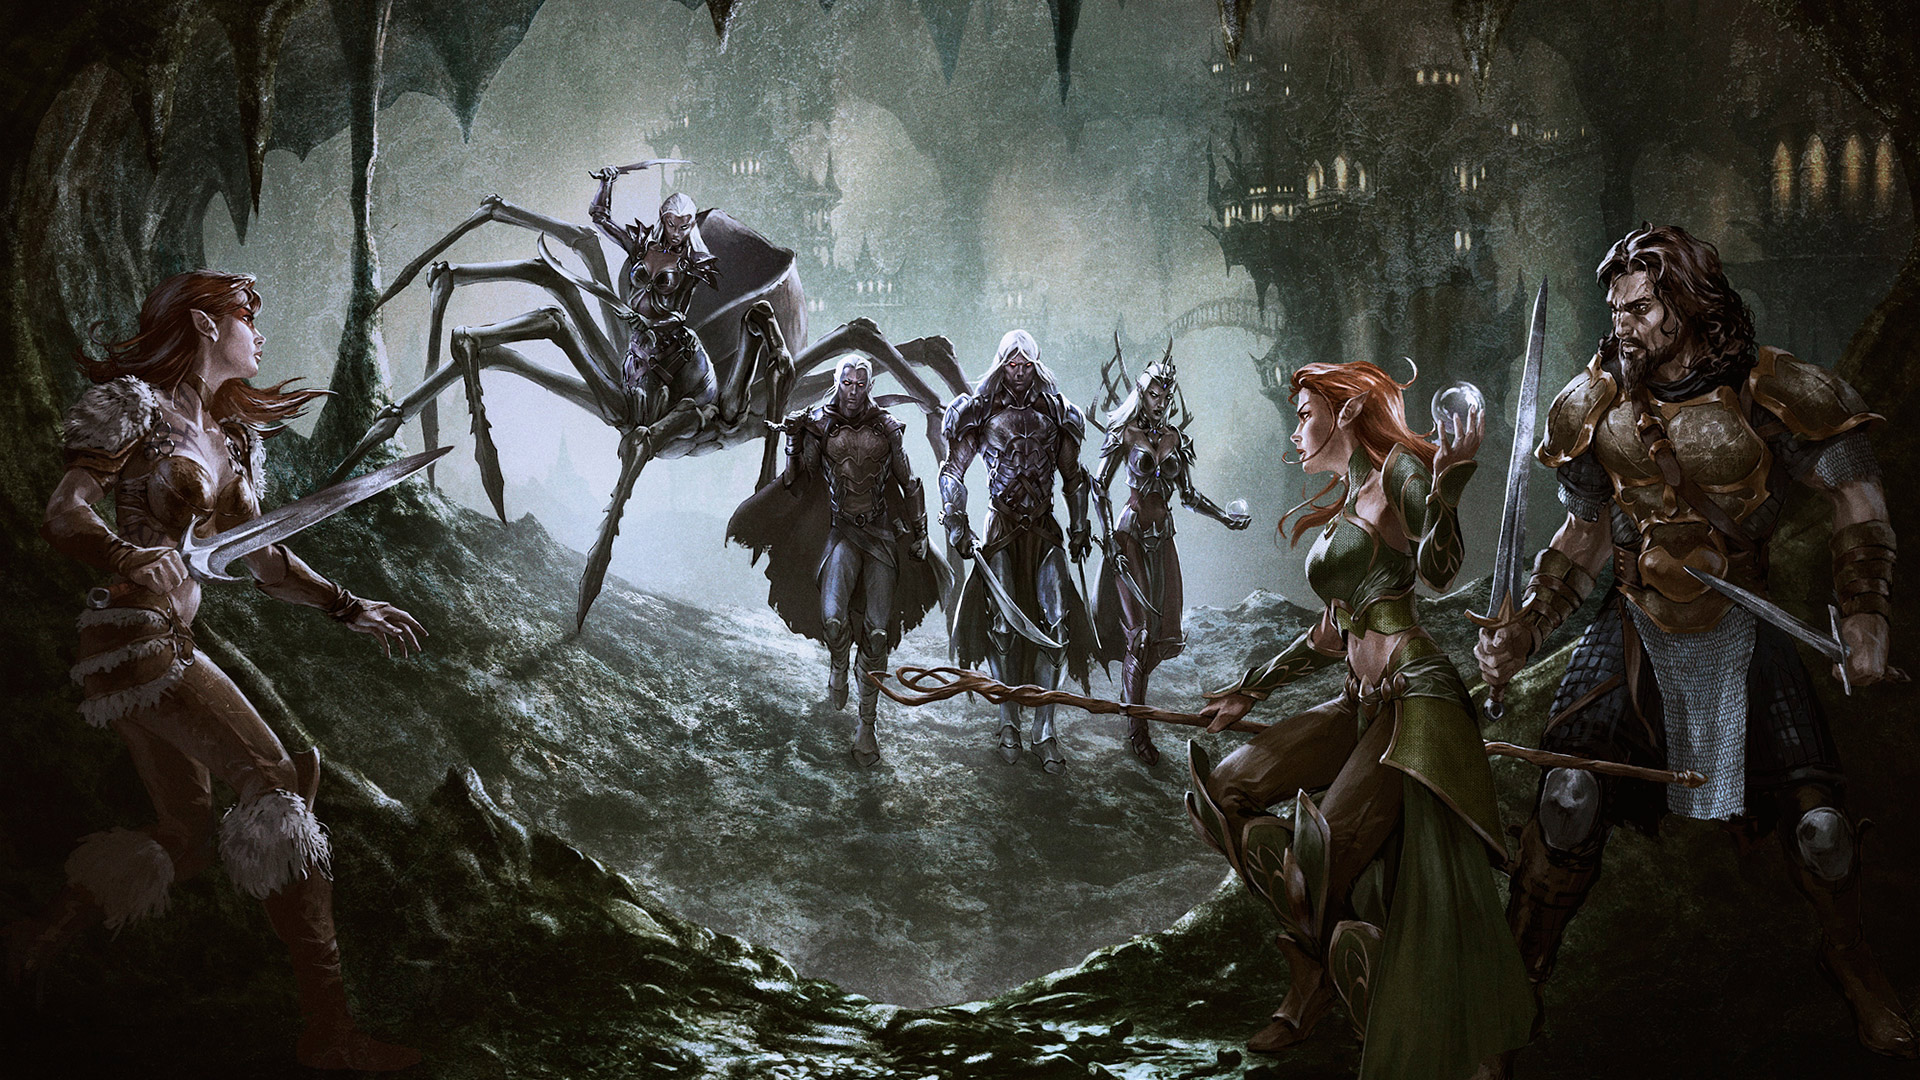 Dungeons amp Dragons Online Wallpaper in 1920x1080 1920x1080